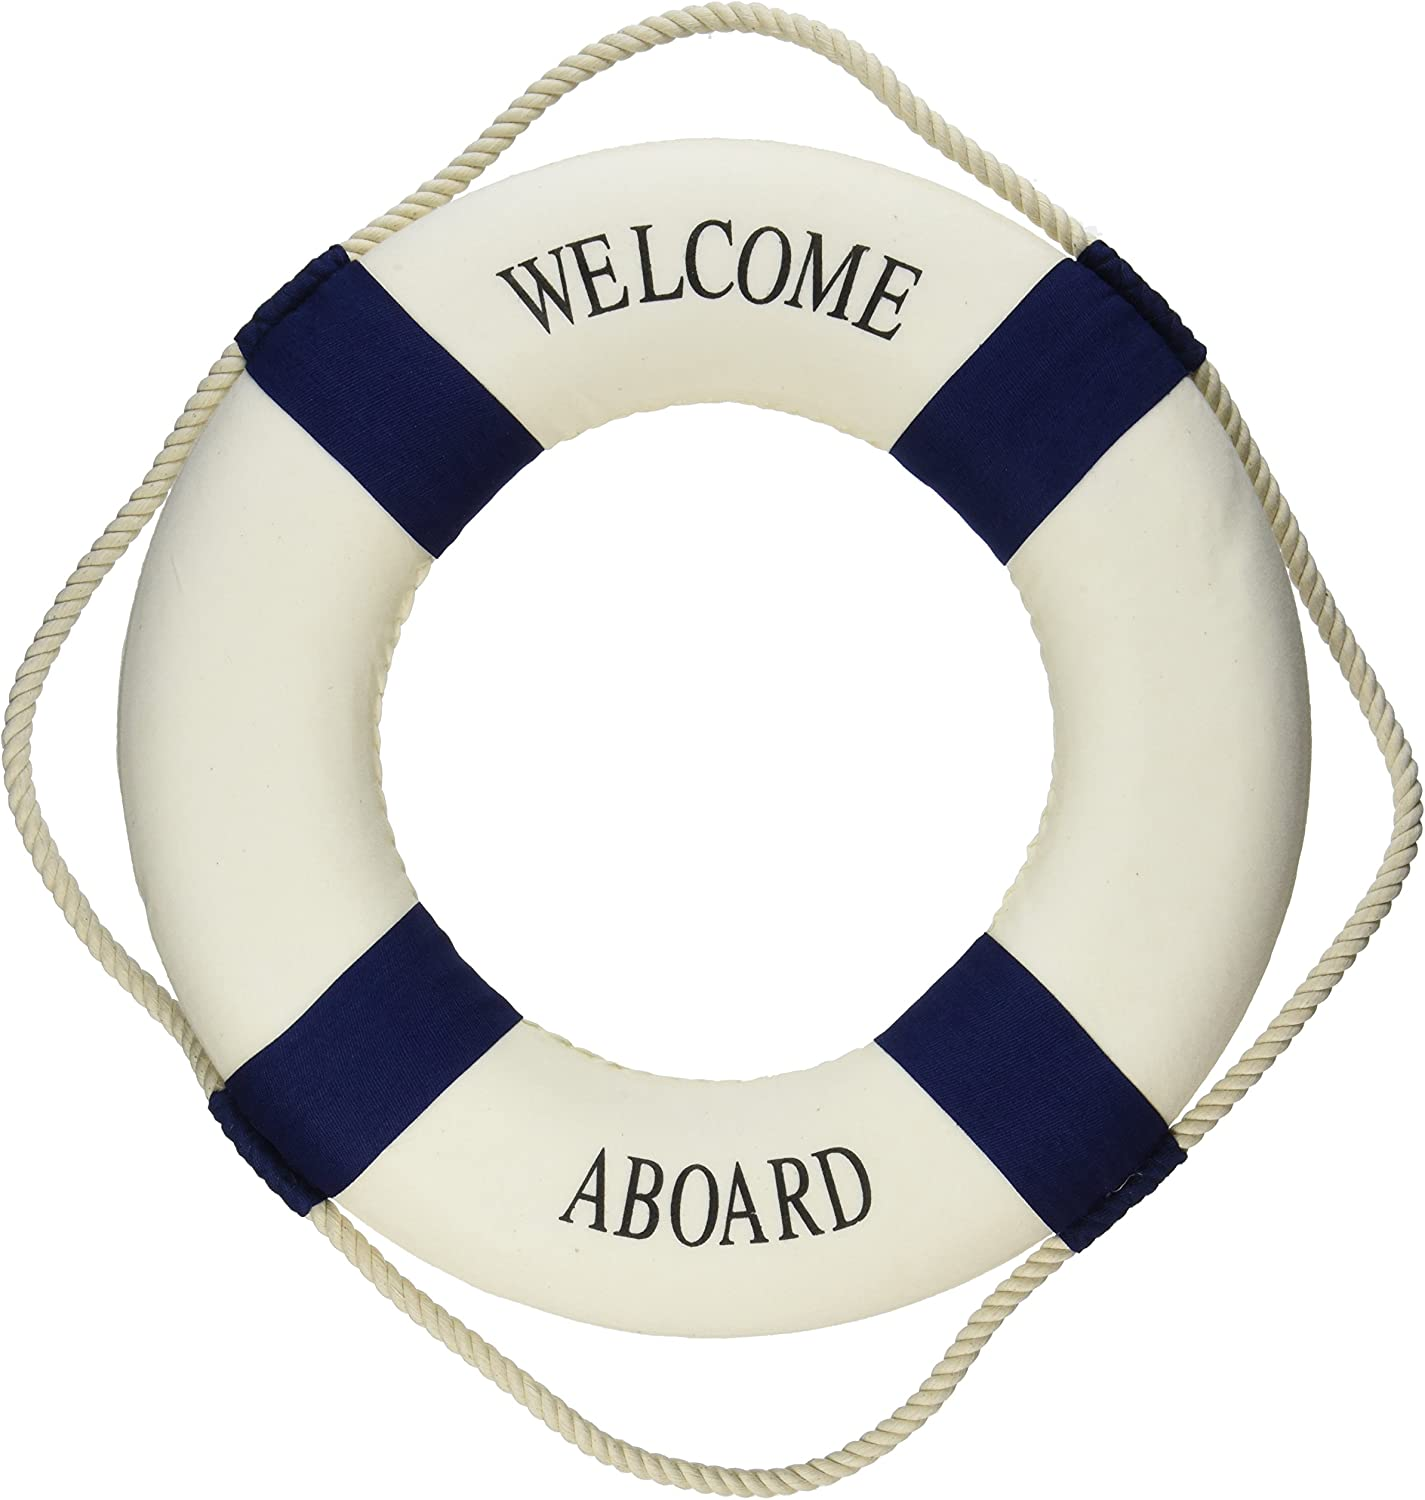 """Oliasports Welcome Aboard Cloth Life Ring Navy Accent Nautical Decor 13.5"""" New - Decoration Only"""